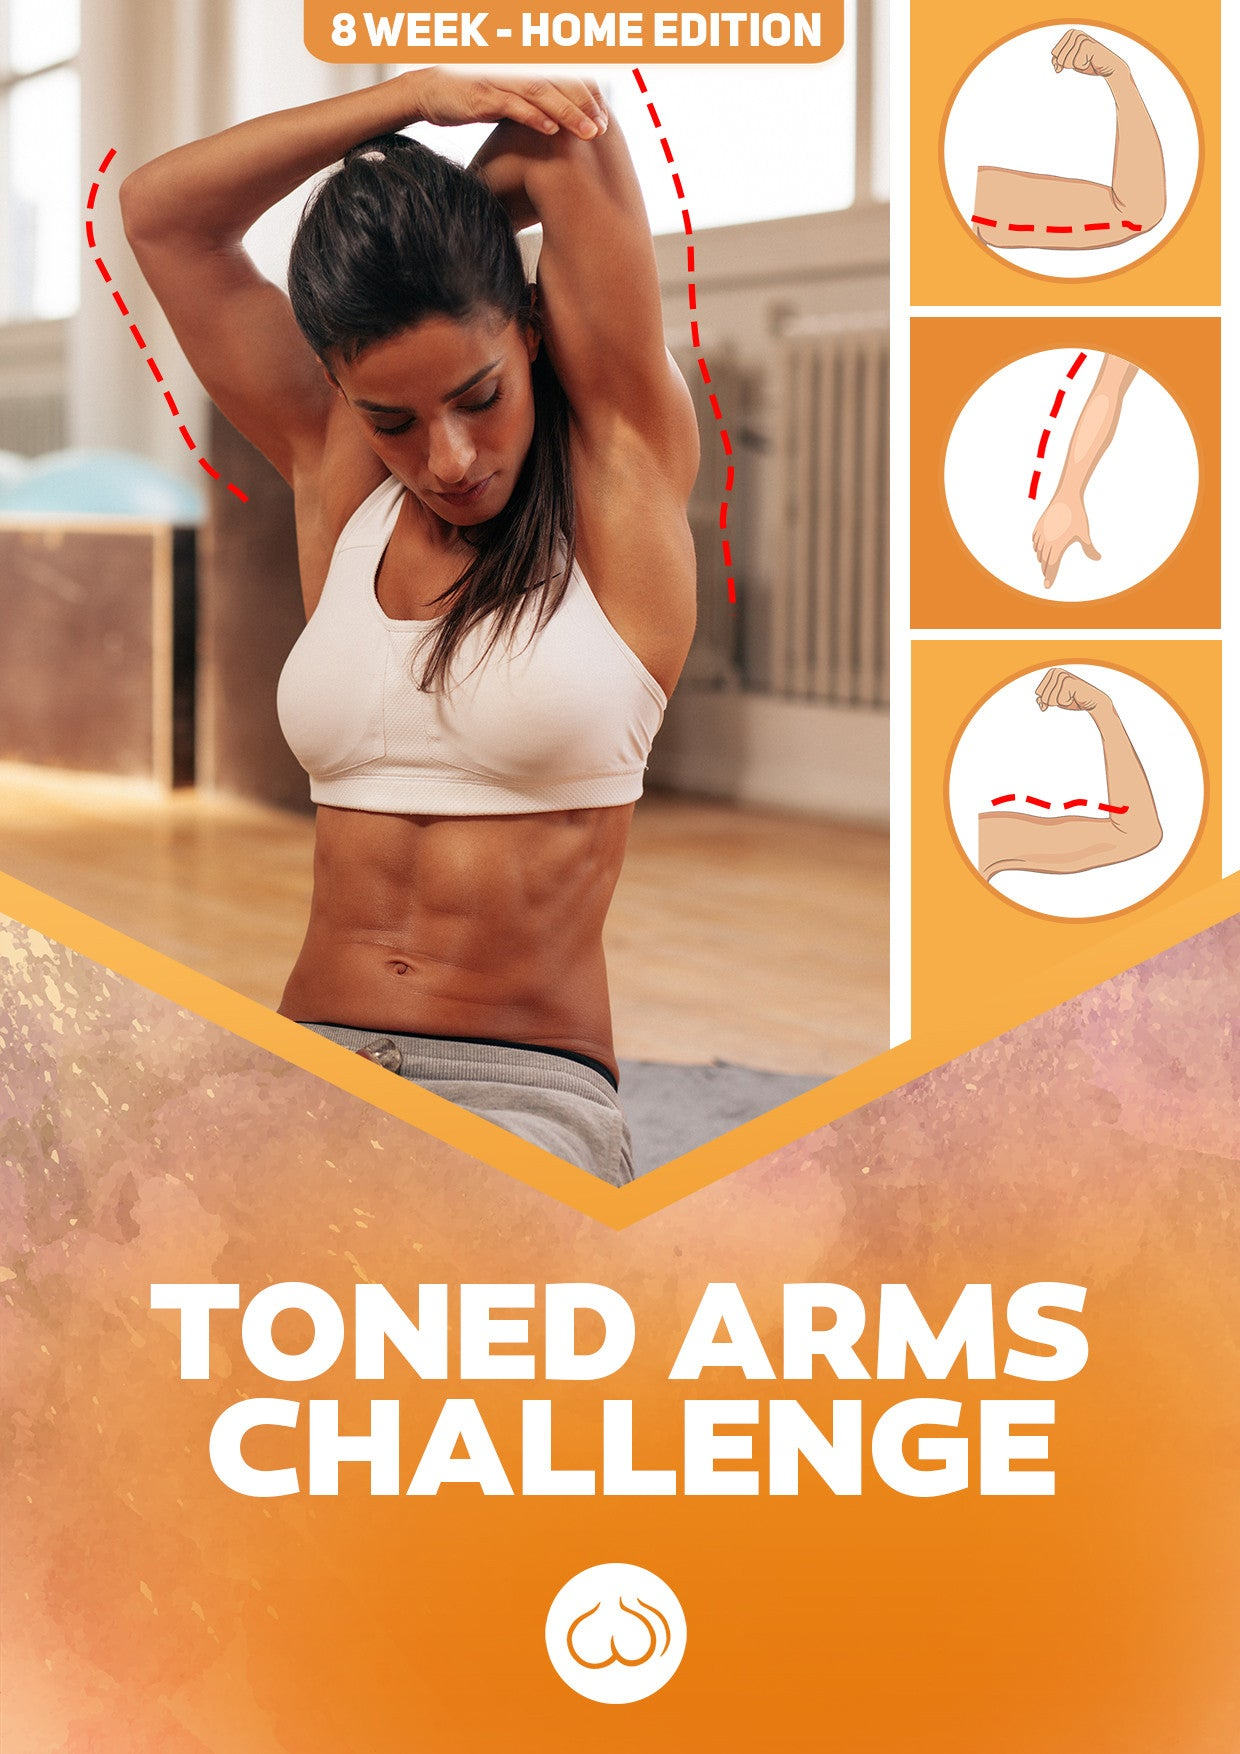 Toned Arms Challenge - Home Edition